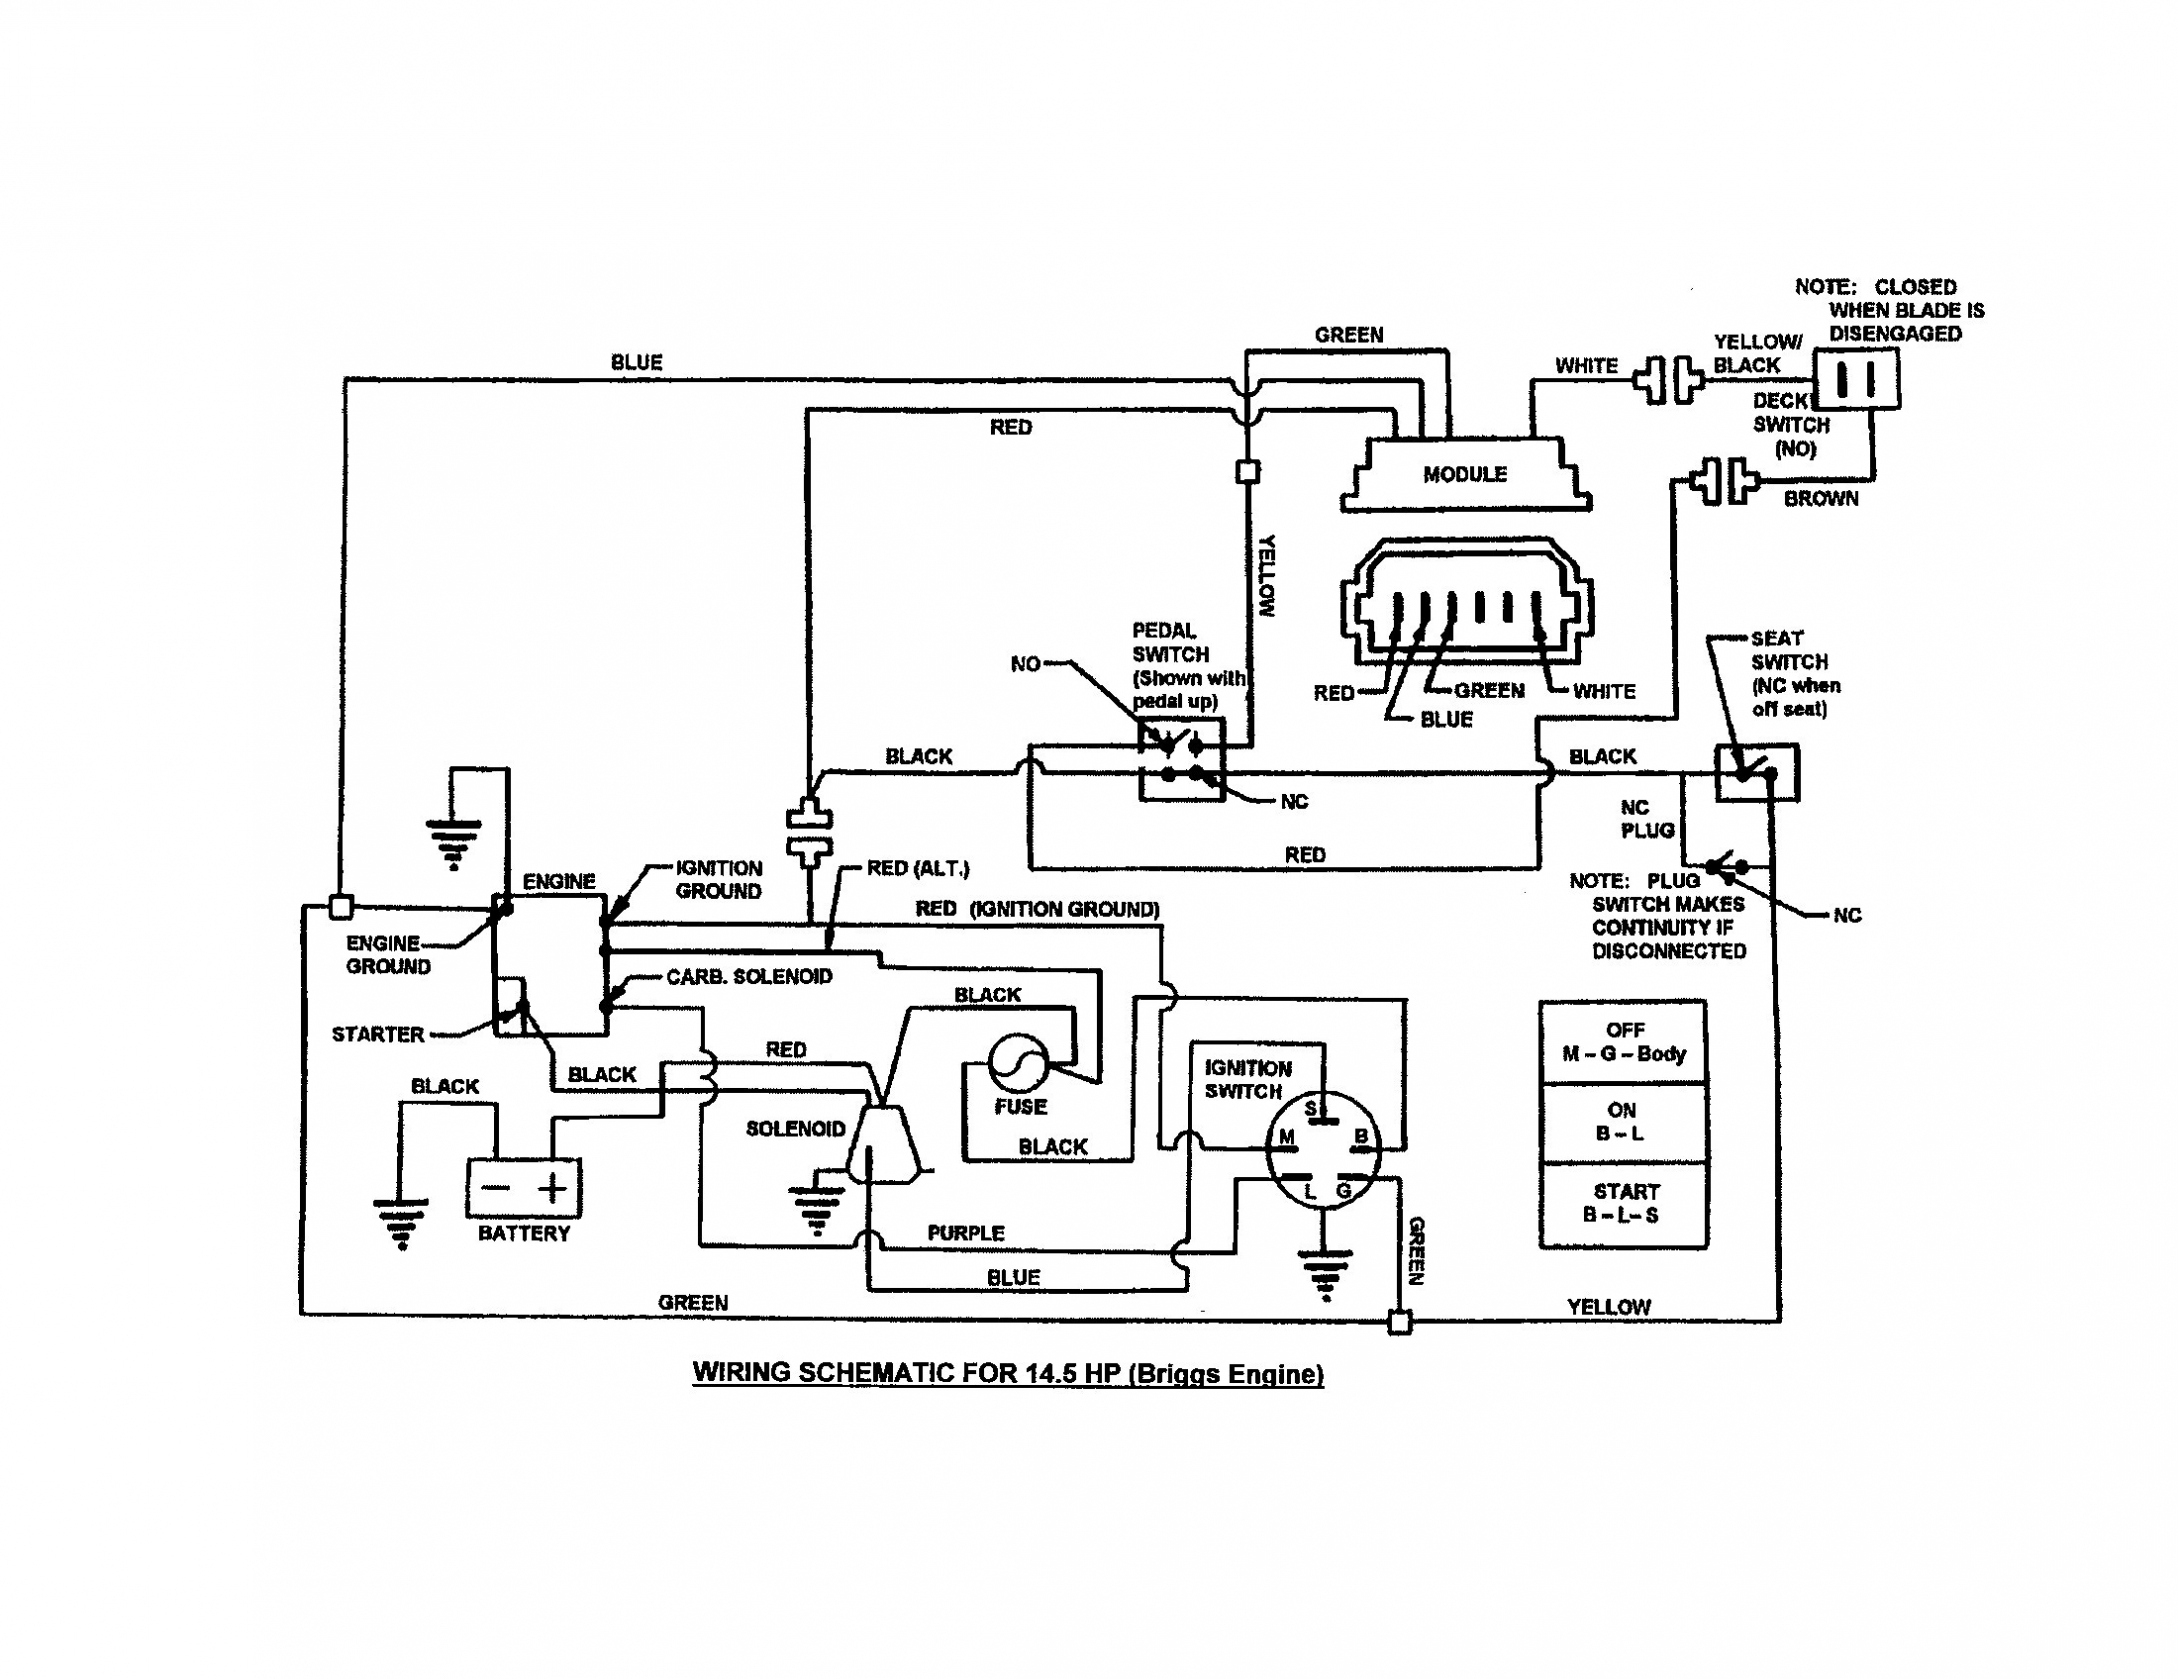 Wiring Diagram For Mtd Ignition Switch Best Wiring Diagram For – Mtd - Lawn Mower Ignition Switch Wiring Diagram